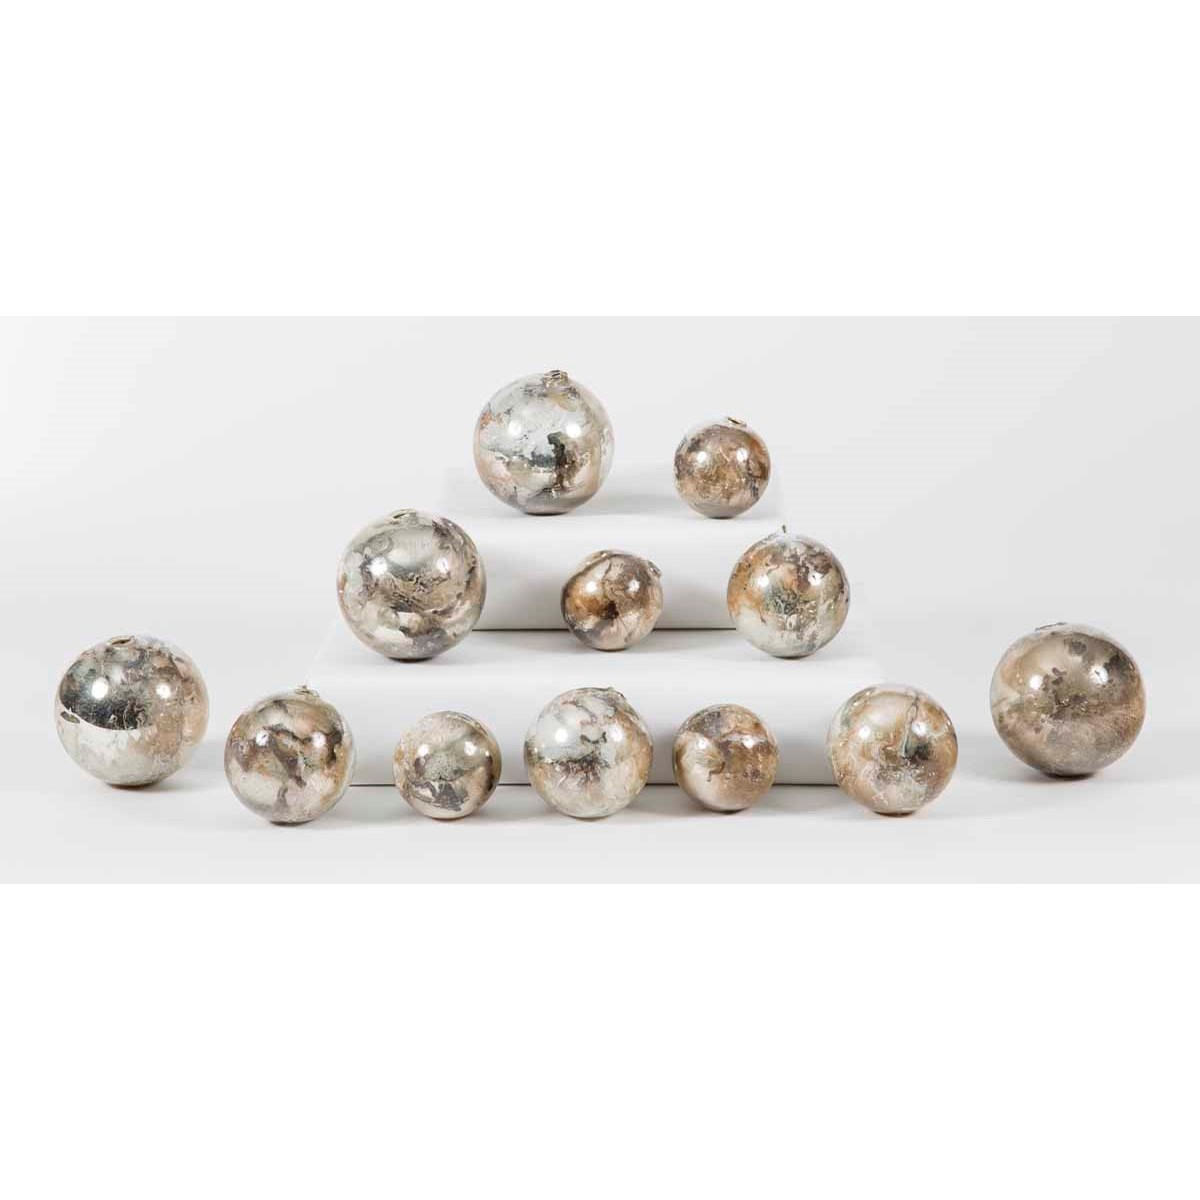 Set of 12 Spheres in Monarch Finish